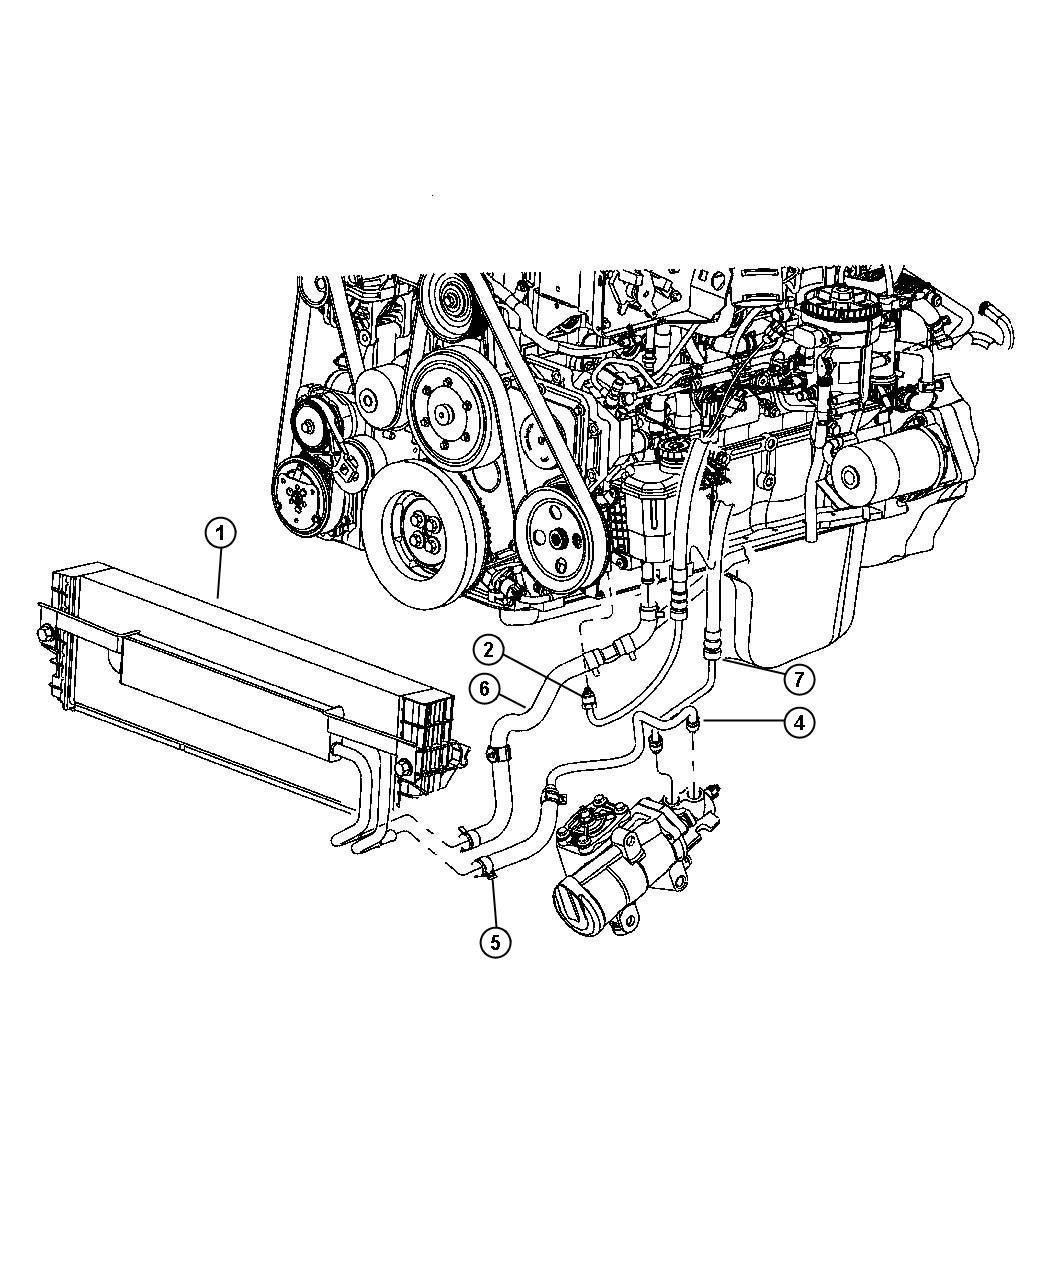 Ford F150 Transmission Service Repair Manuals